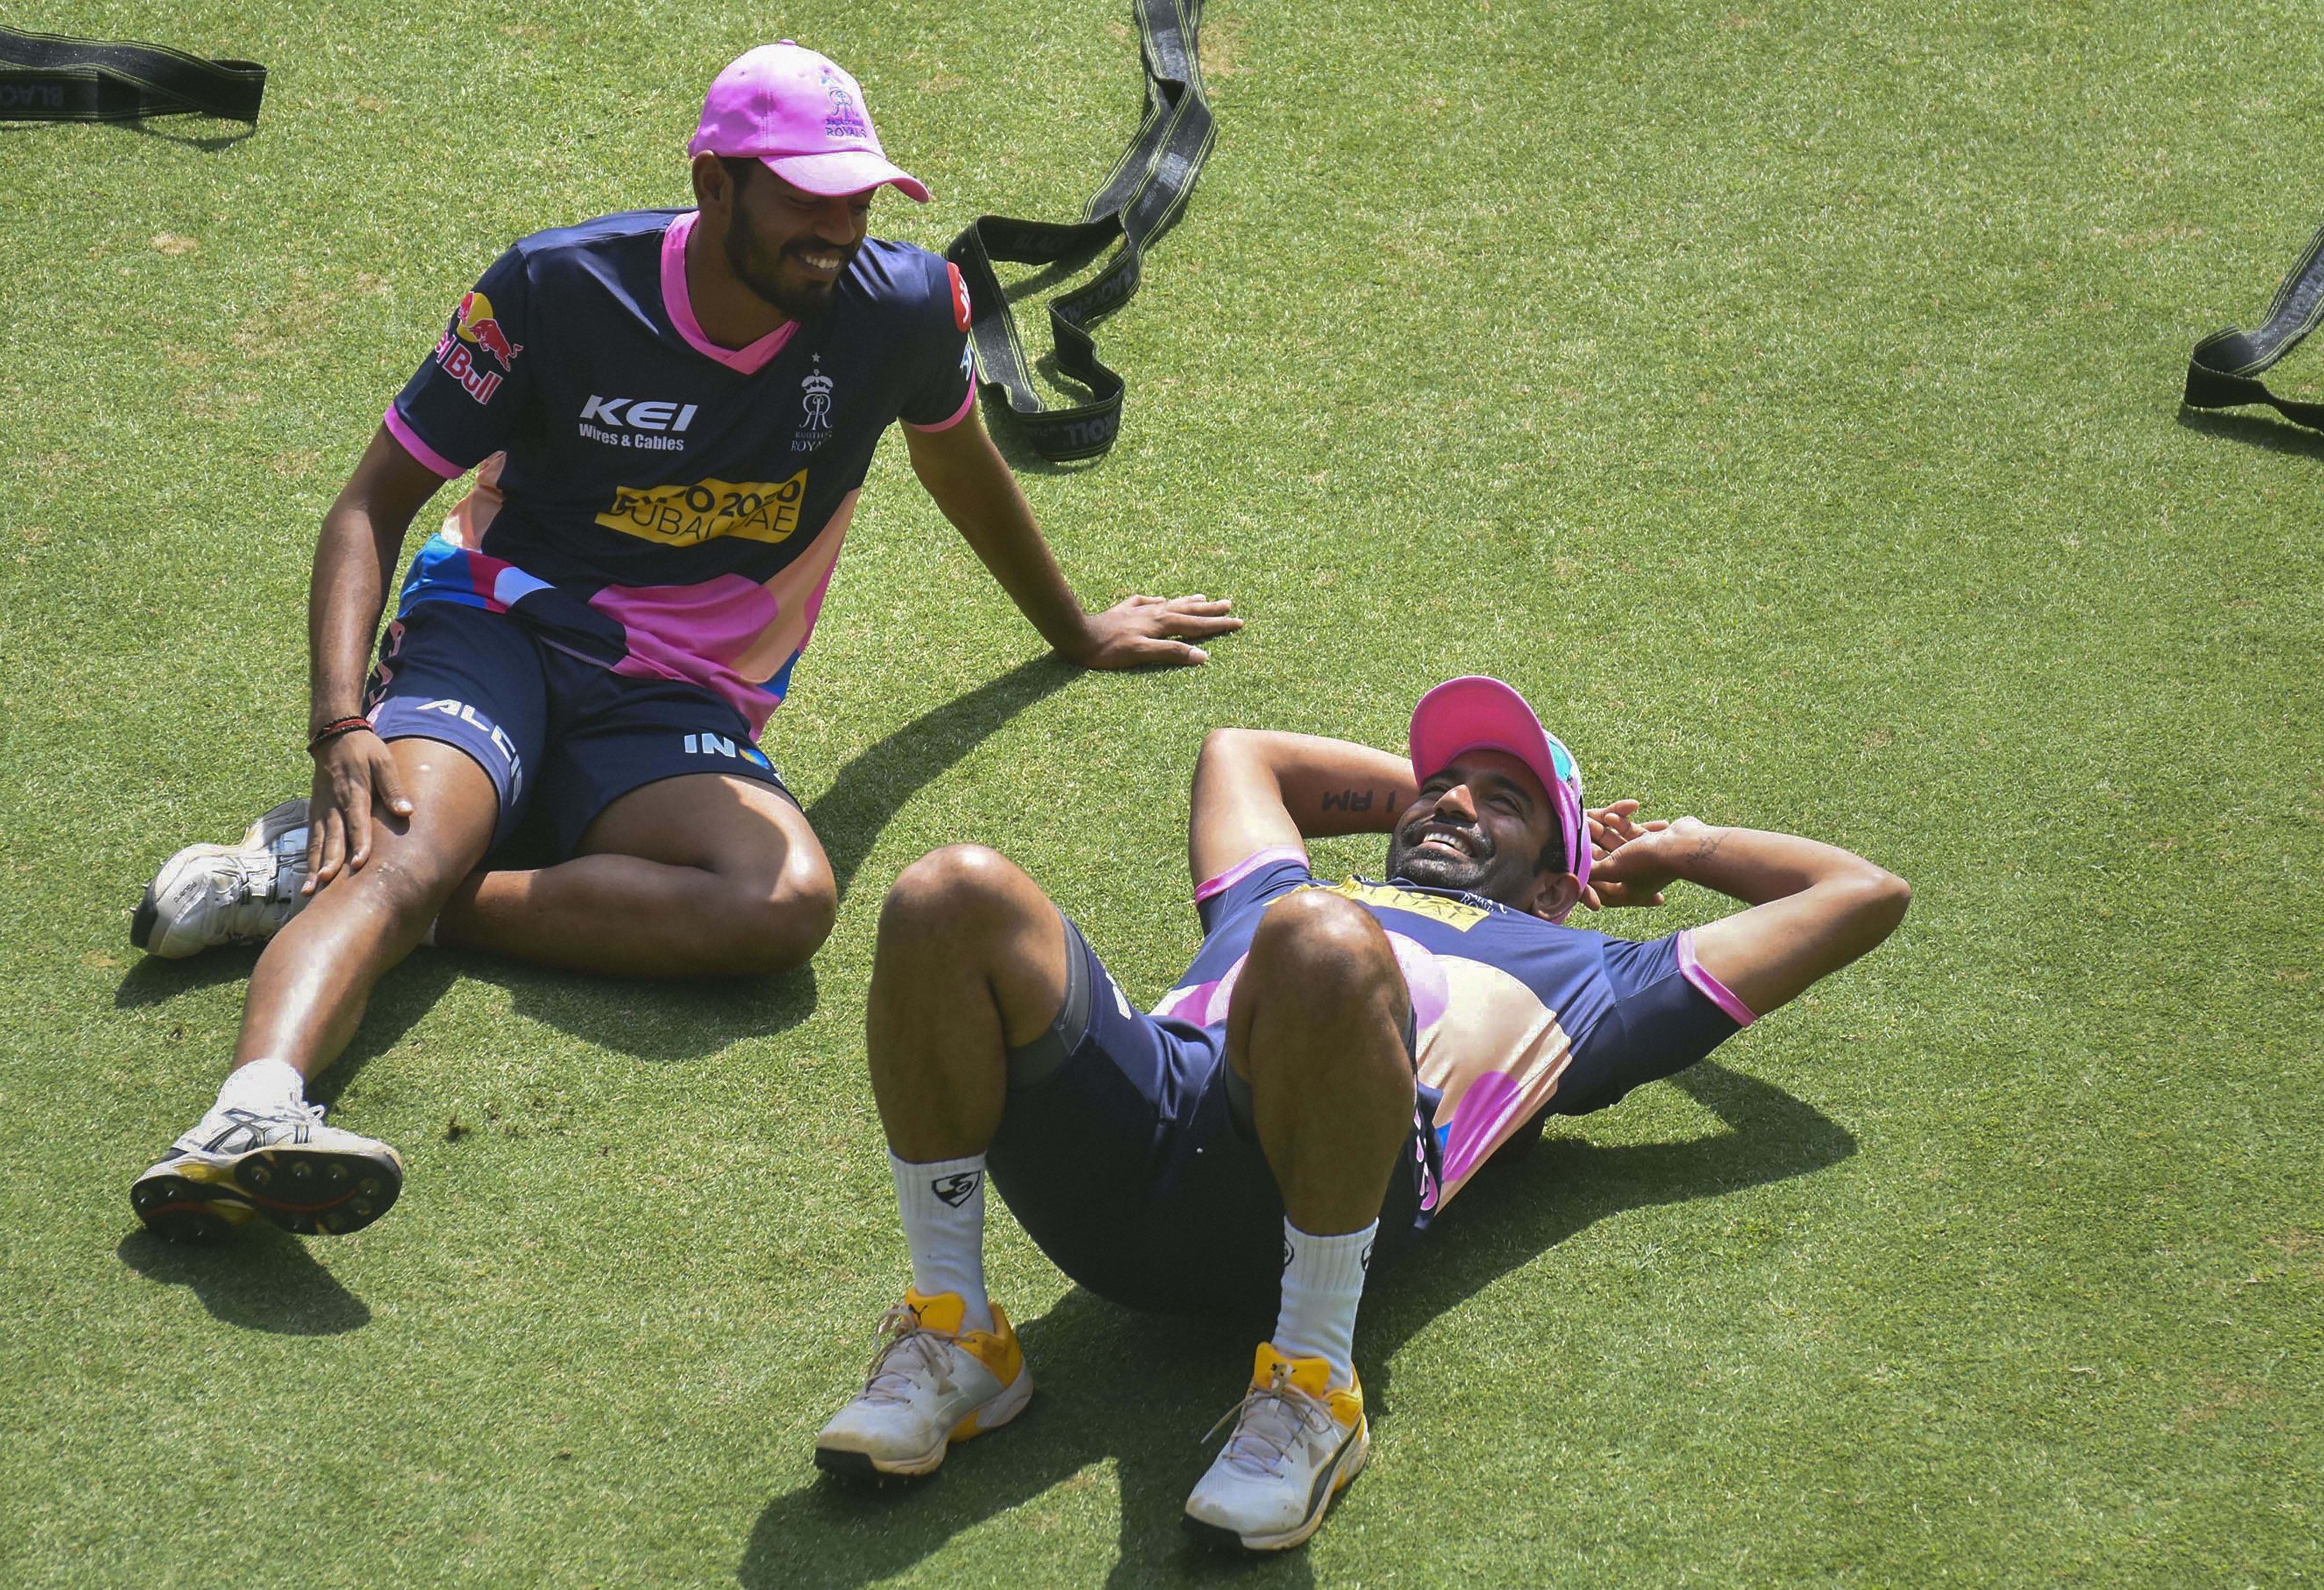 Rajasthan Royals player Robin Uthappa (R) during a practice session ahead of the 13th edition of Indian Premier League (IPL), at ACA Stadium, in Guwahati